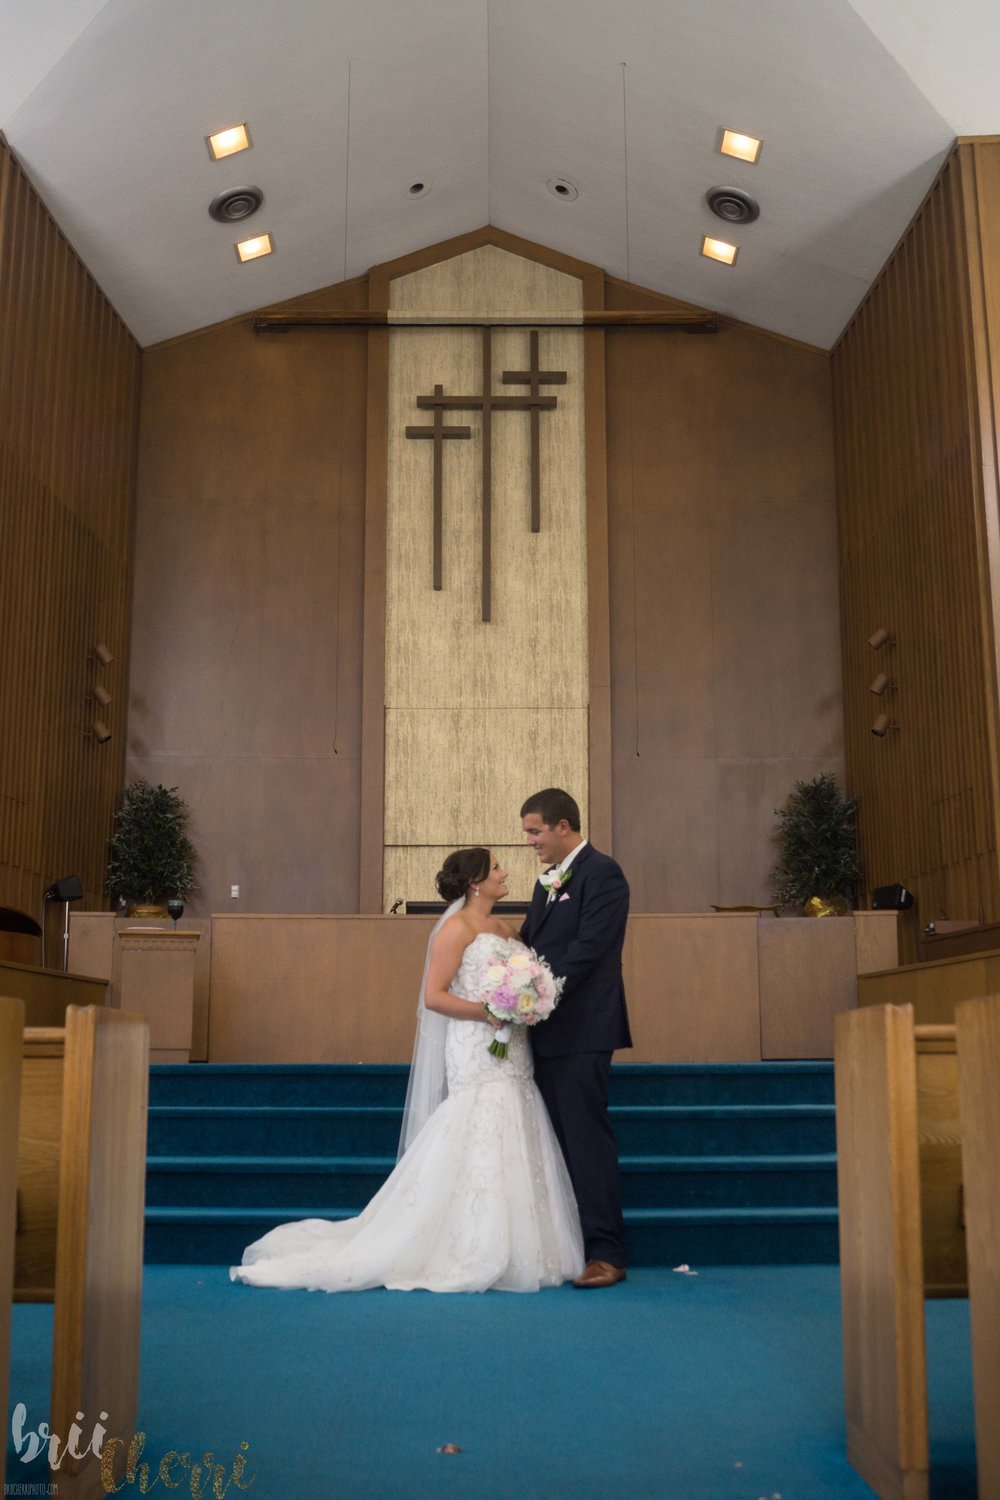 immanuel baptist church greenville nc Wedding